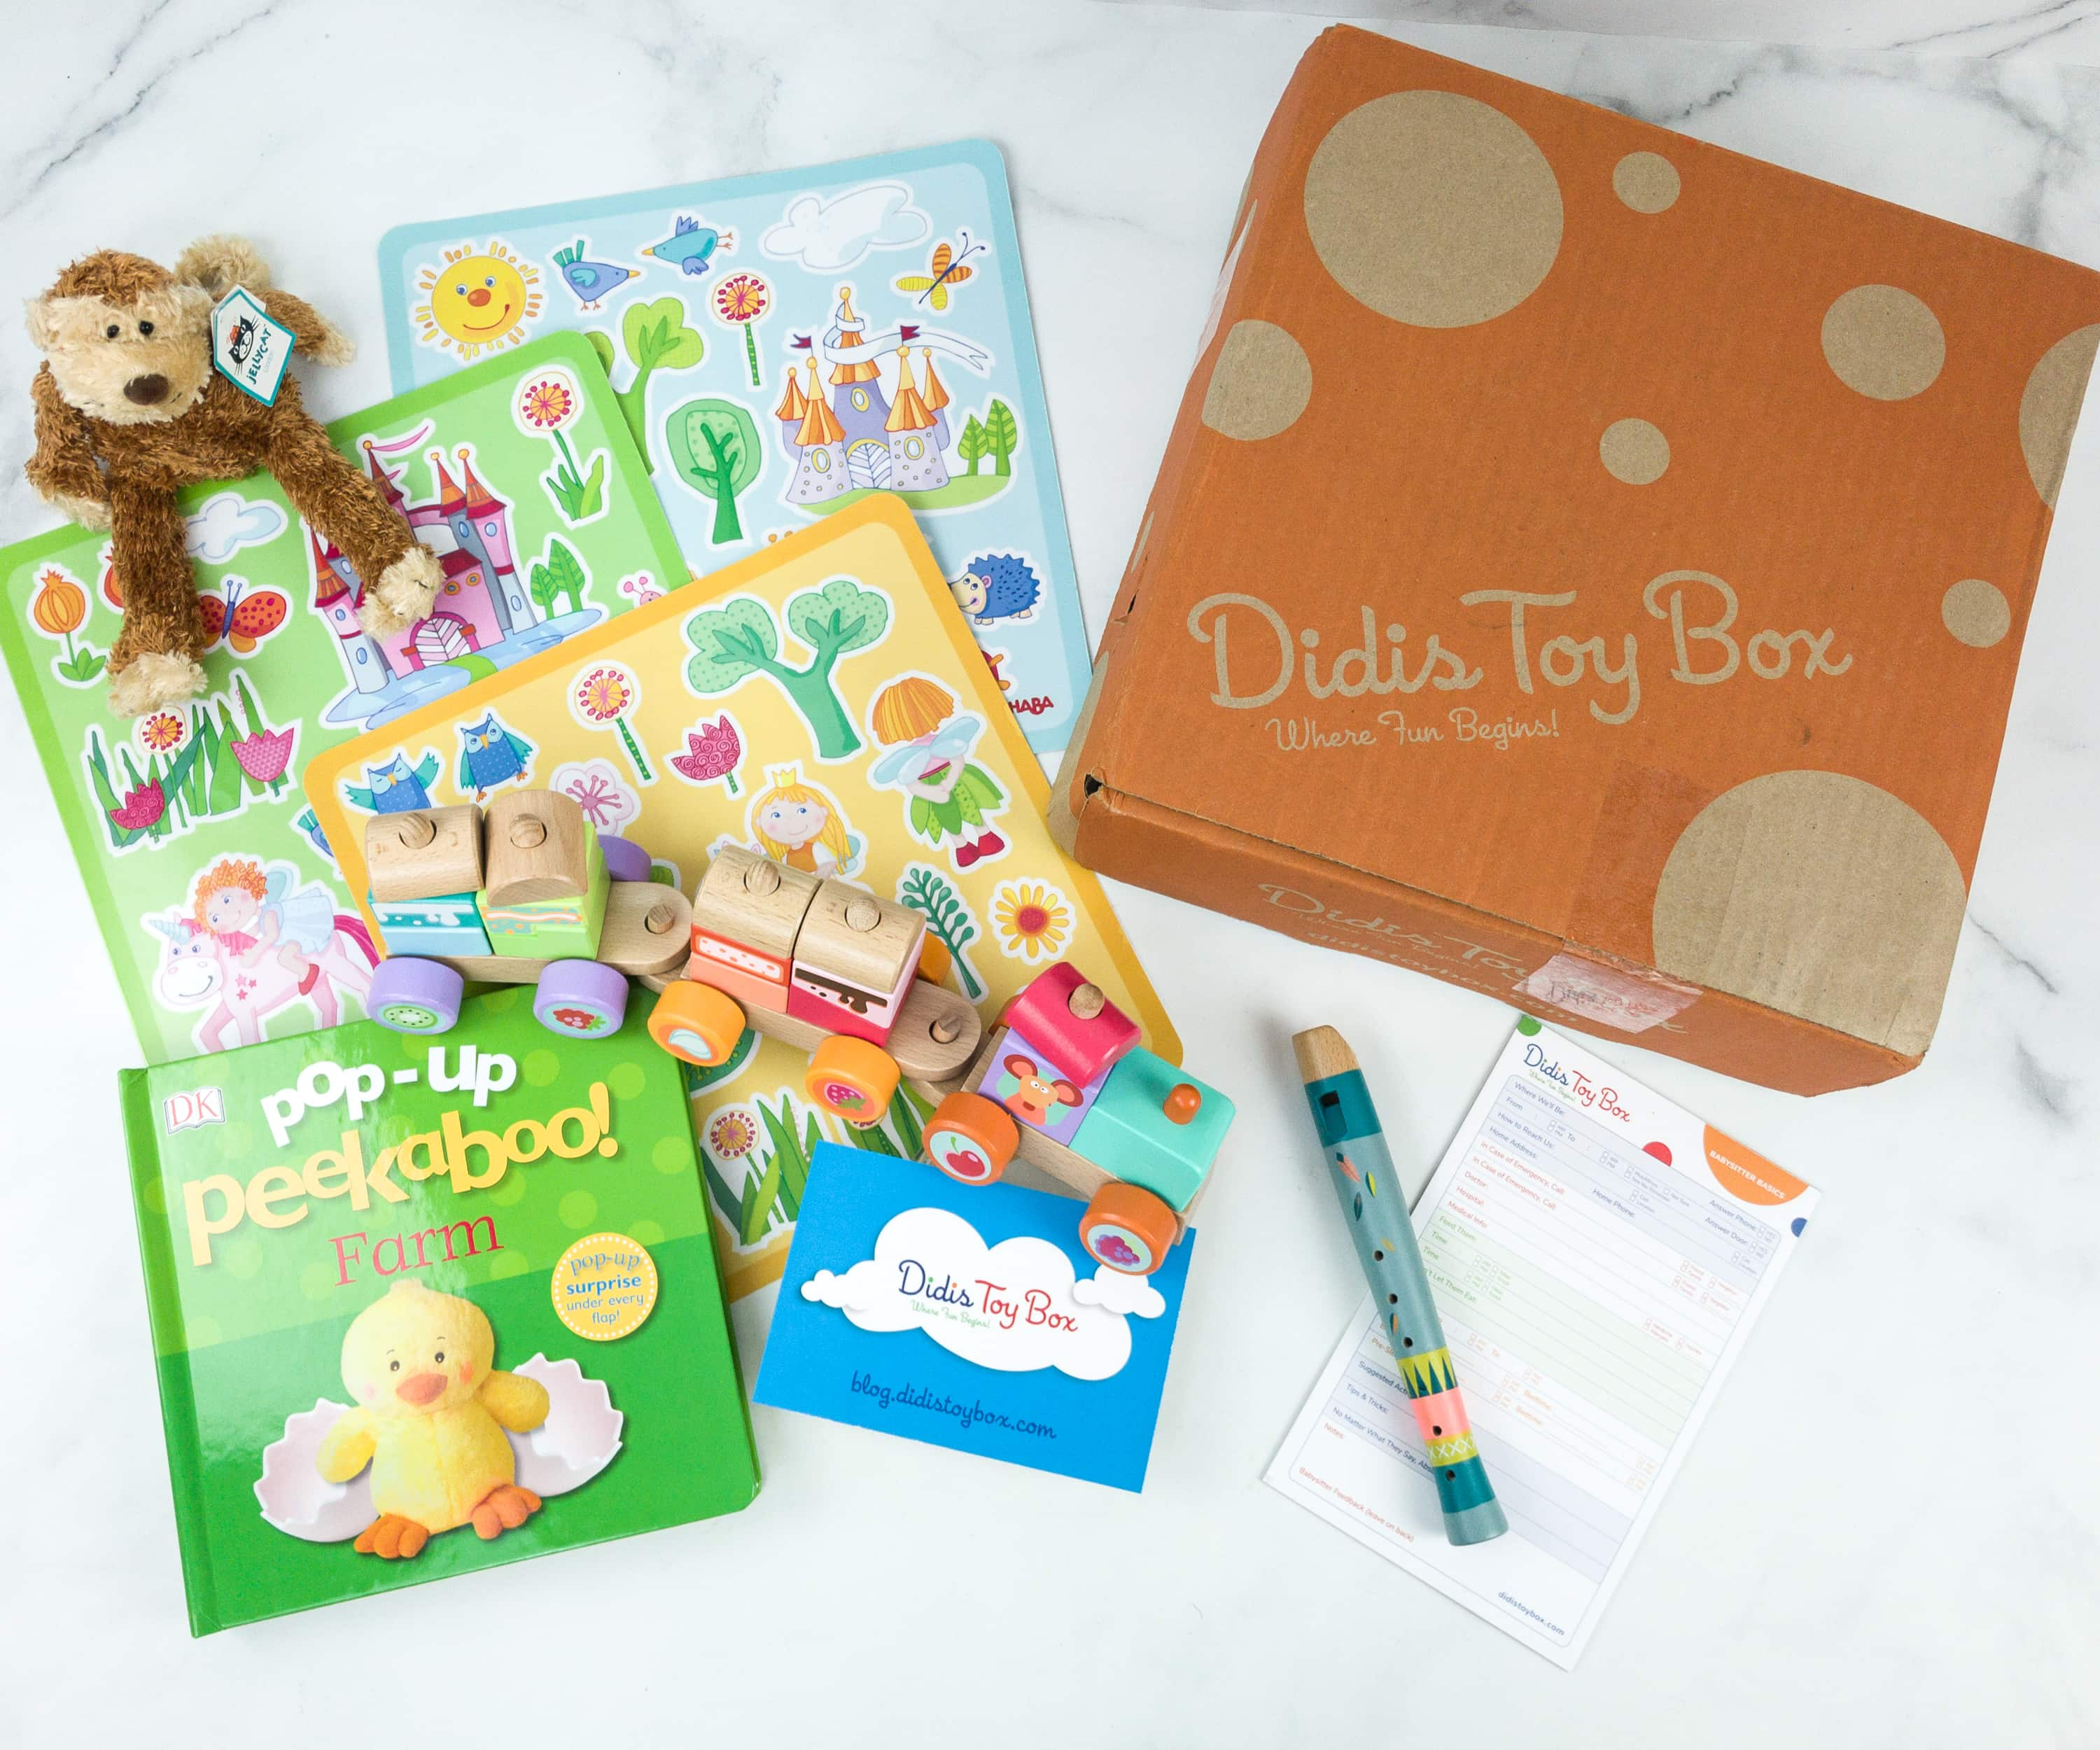 Didis Toy Box June 2019 Subscription Box Review & Coupon